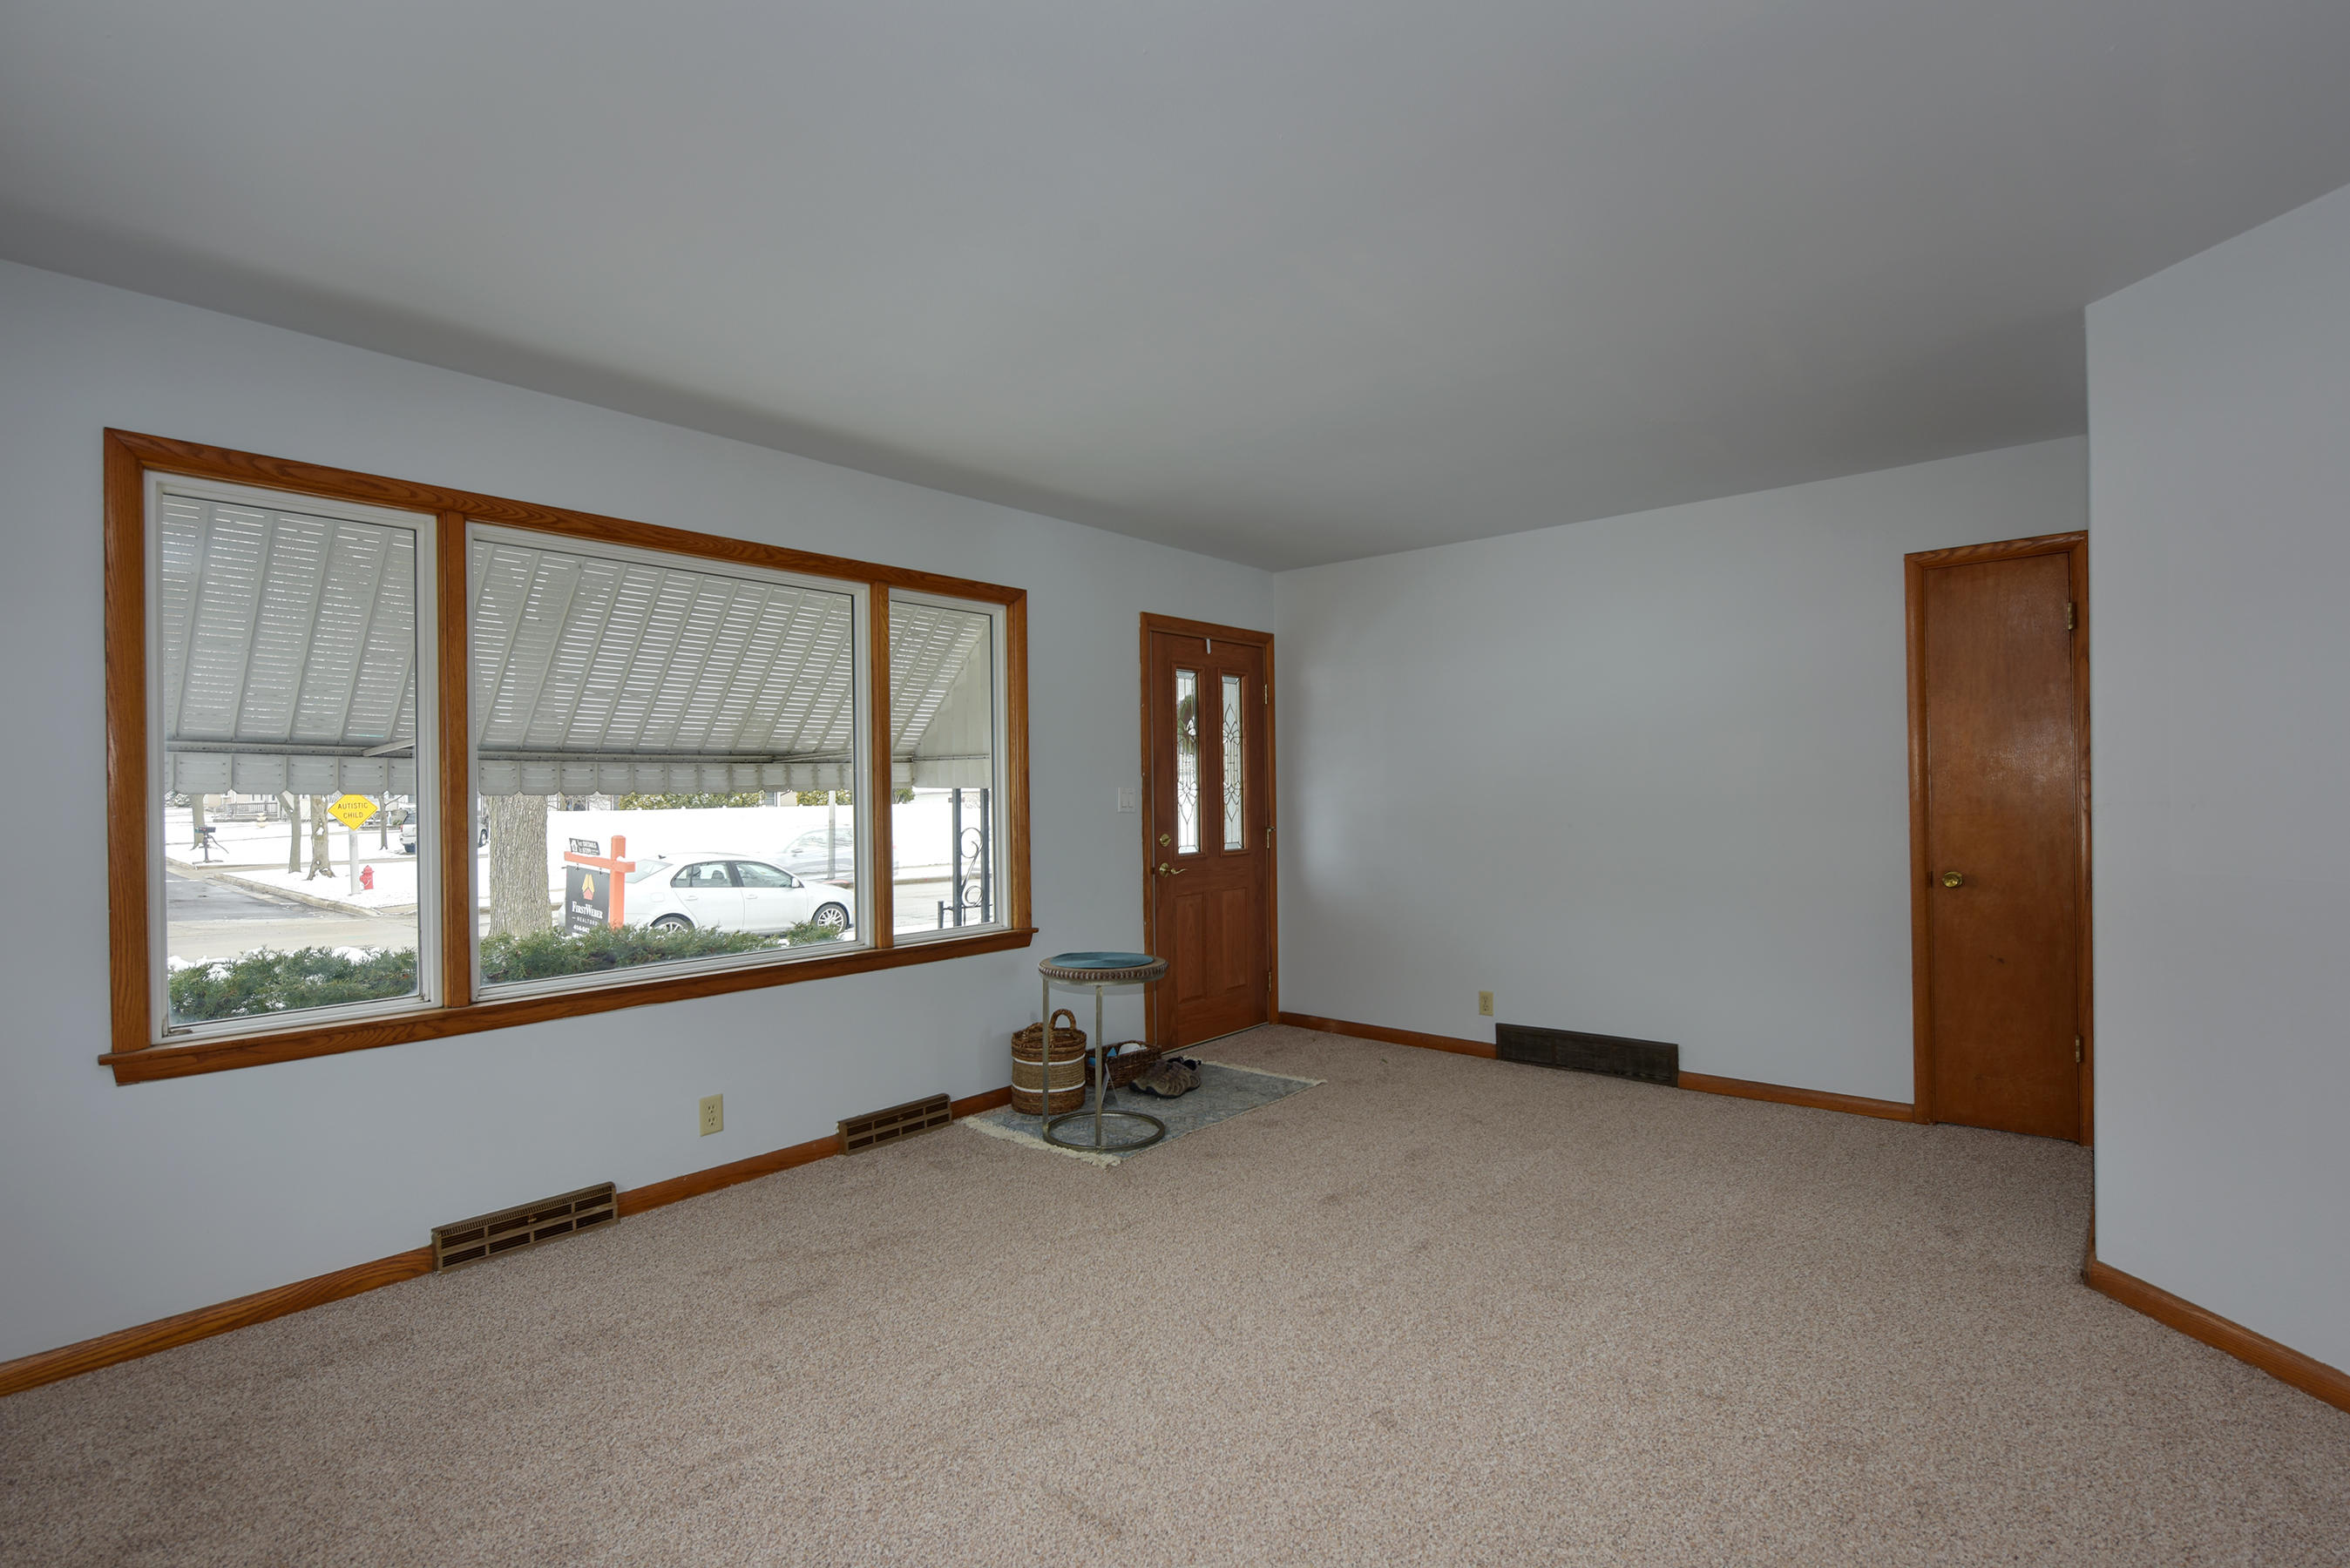 Living Room with New Carpet